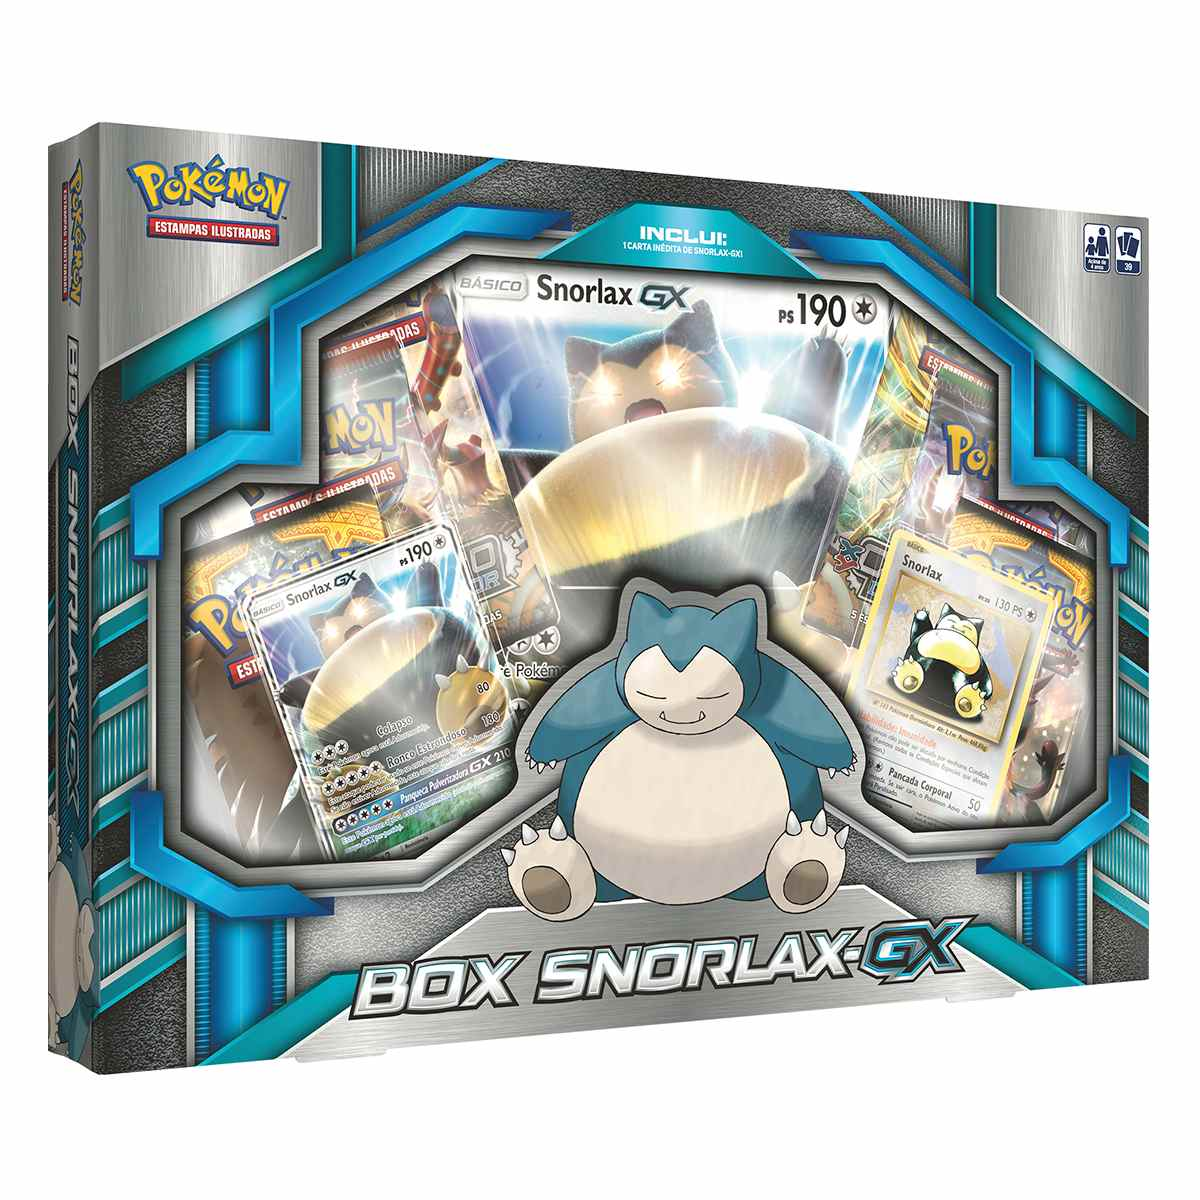 Pokemon Box Snorlax Gx